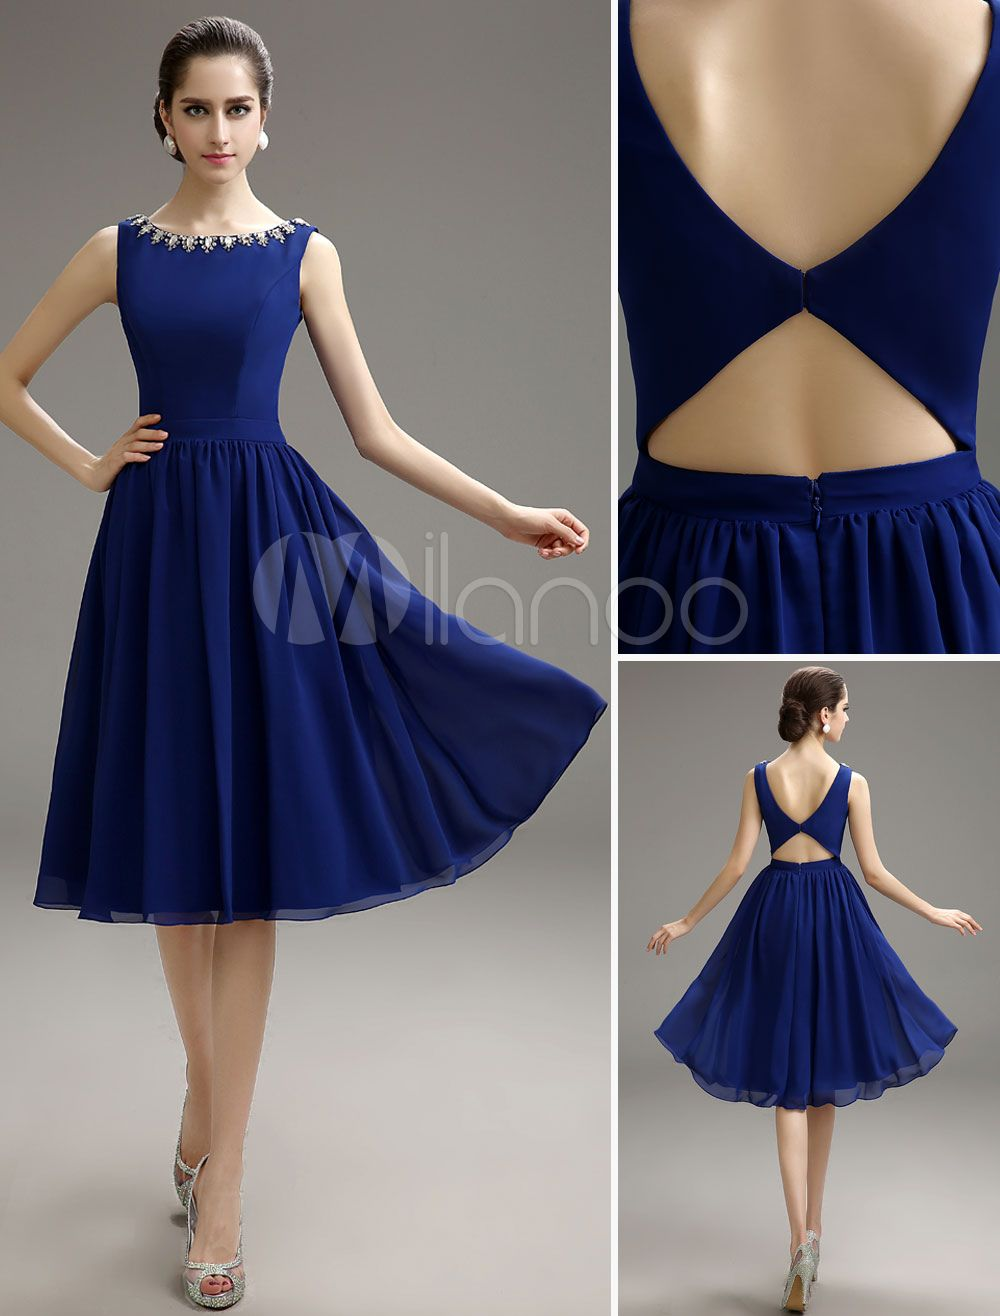 Cobalt Blue Chiffon Dress